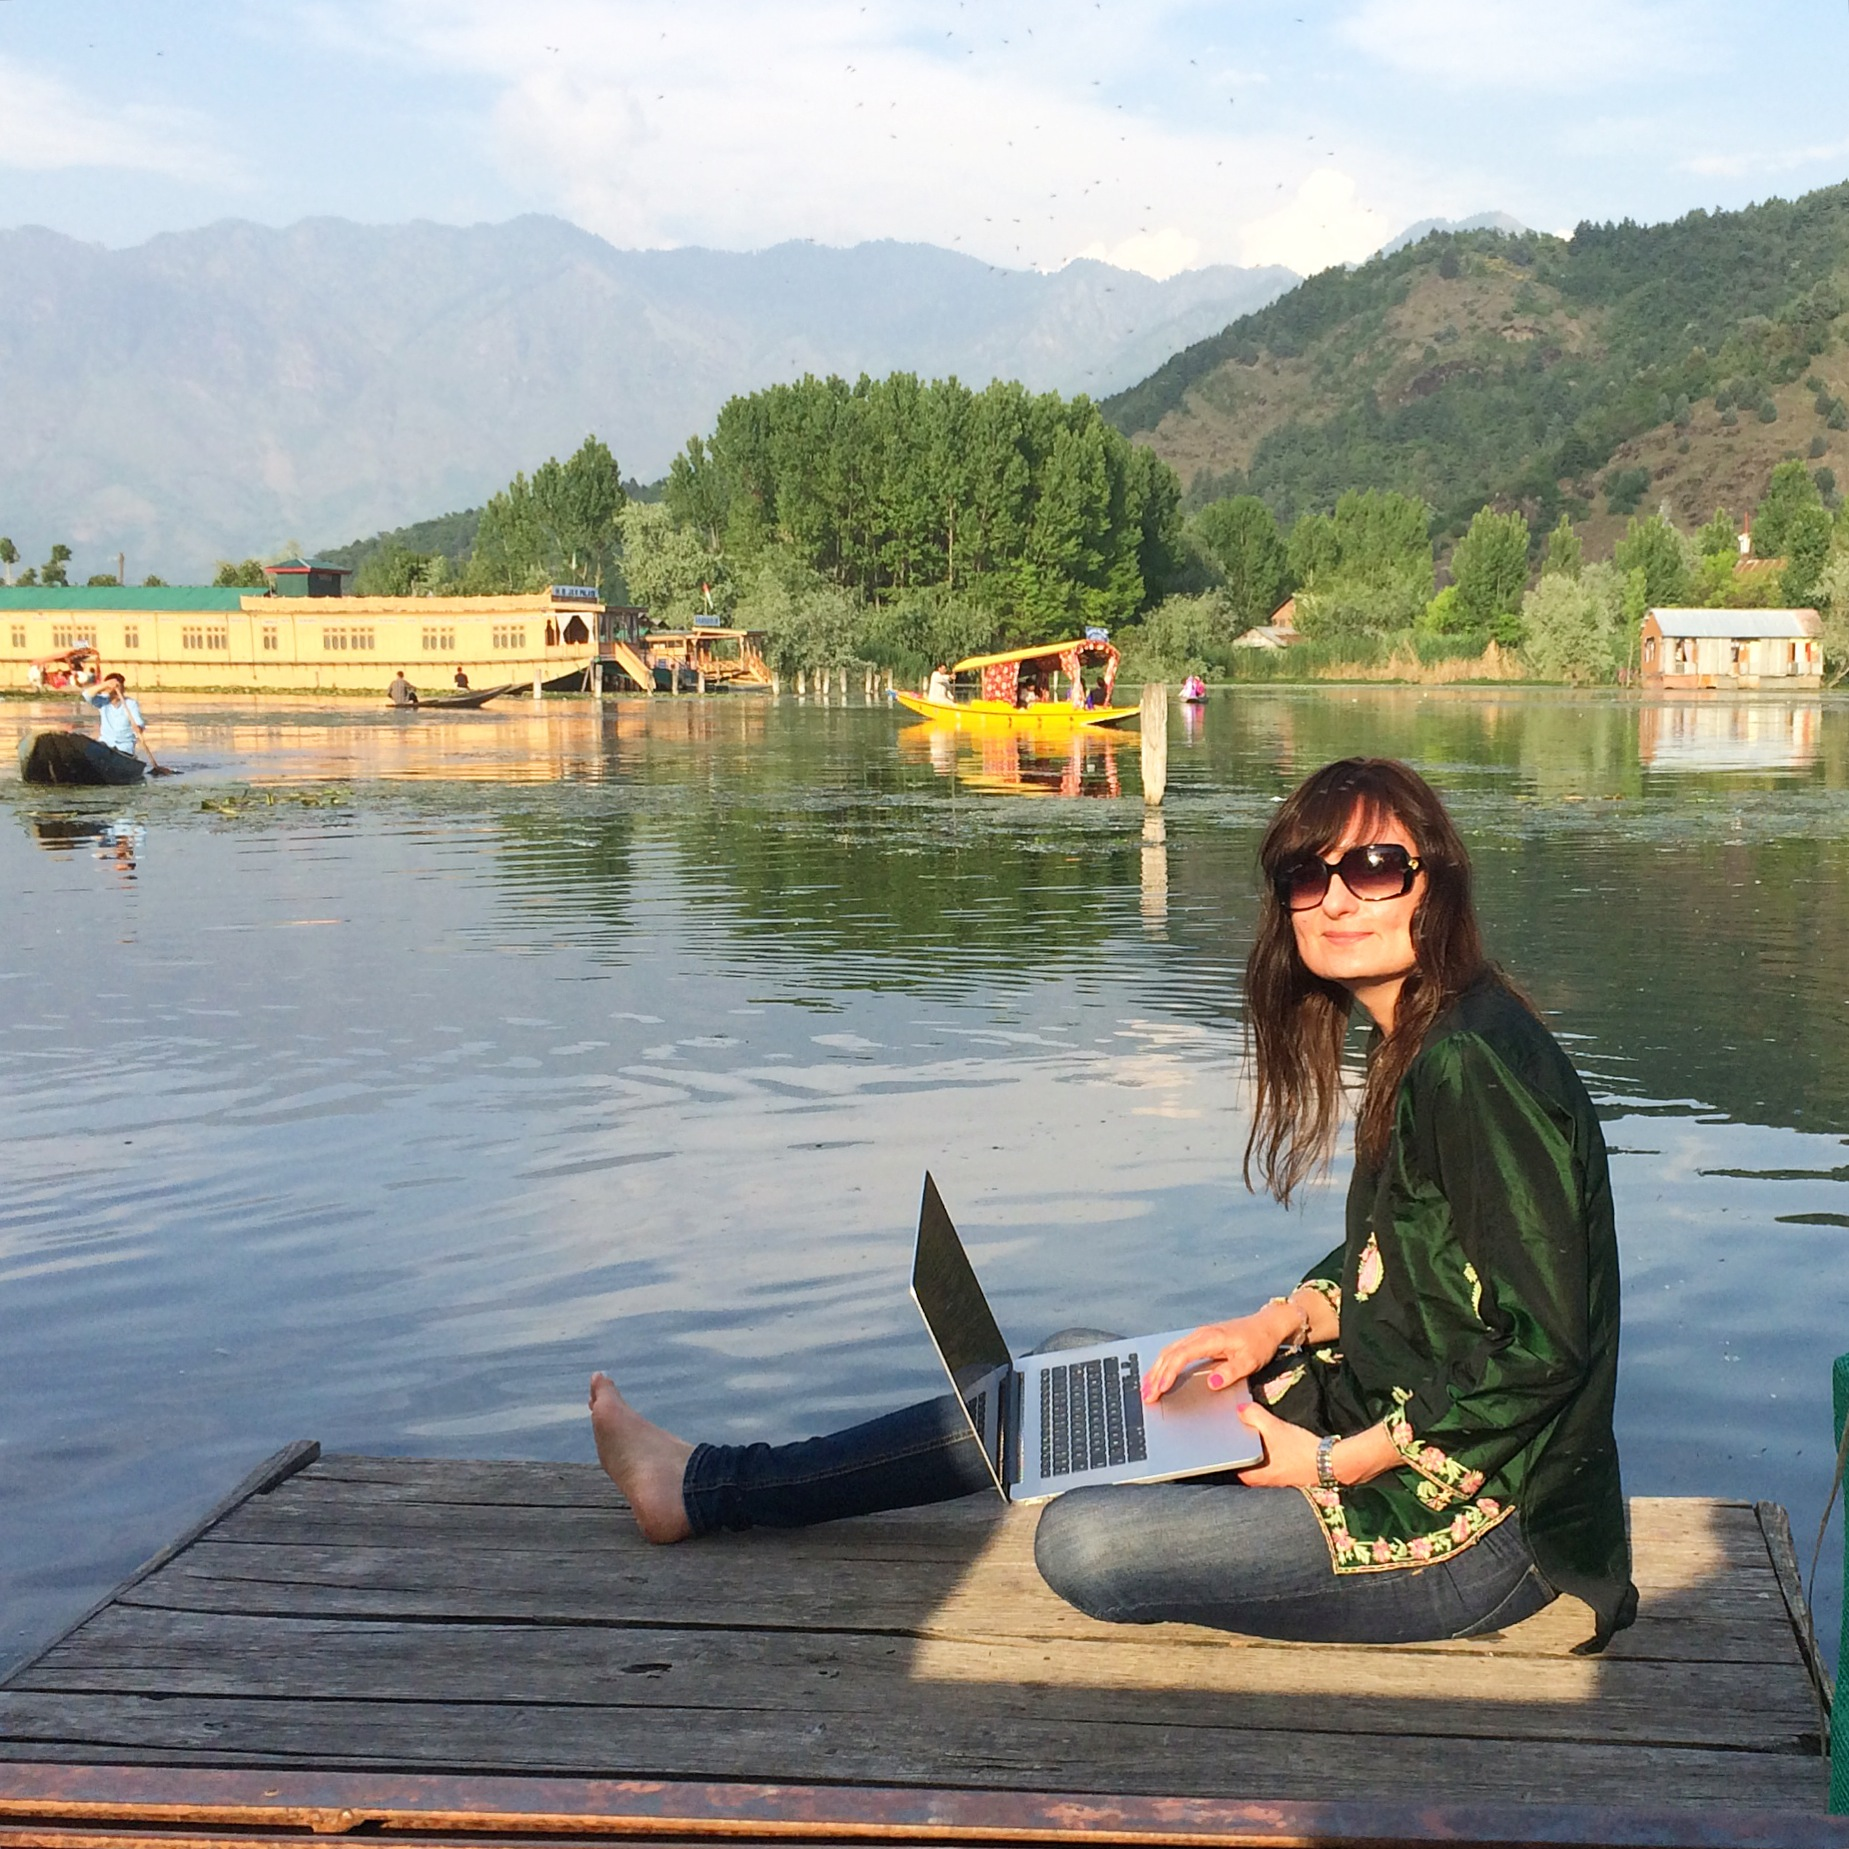 Srinagar Dal lake